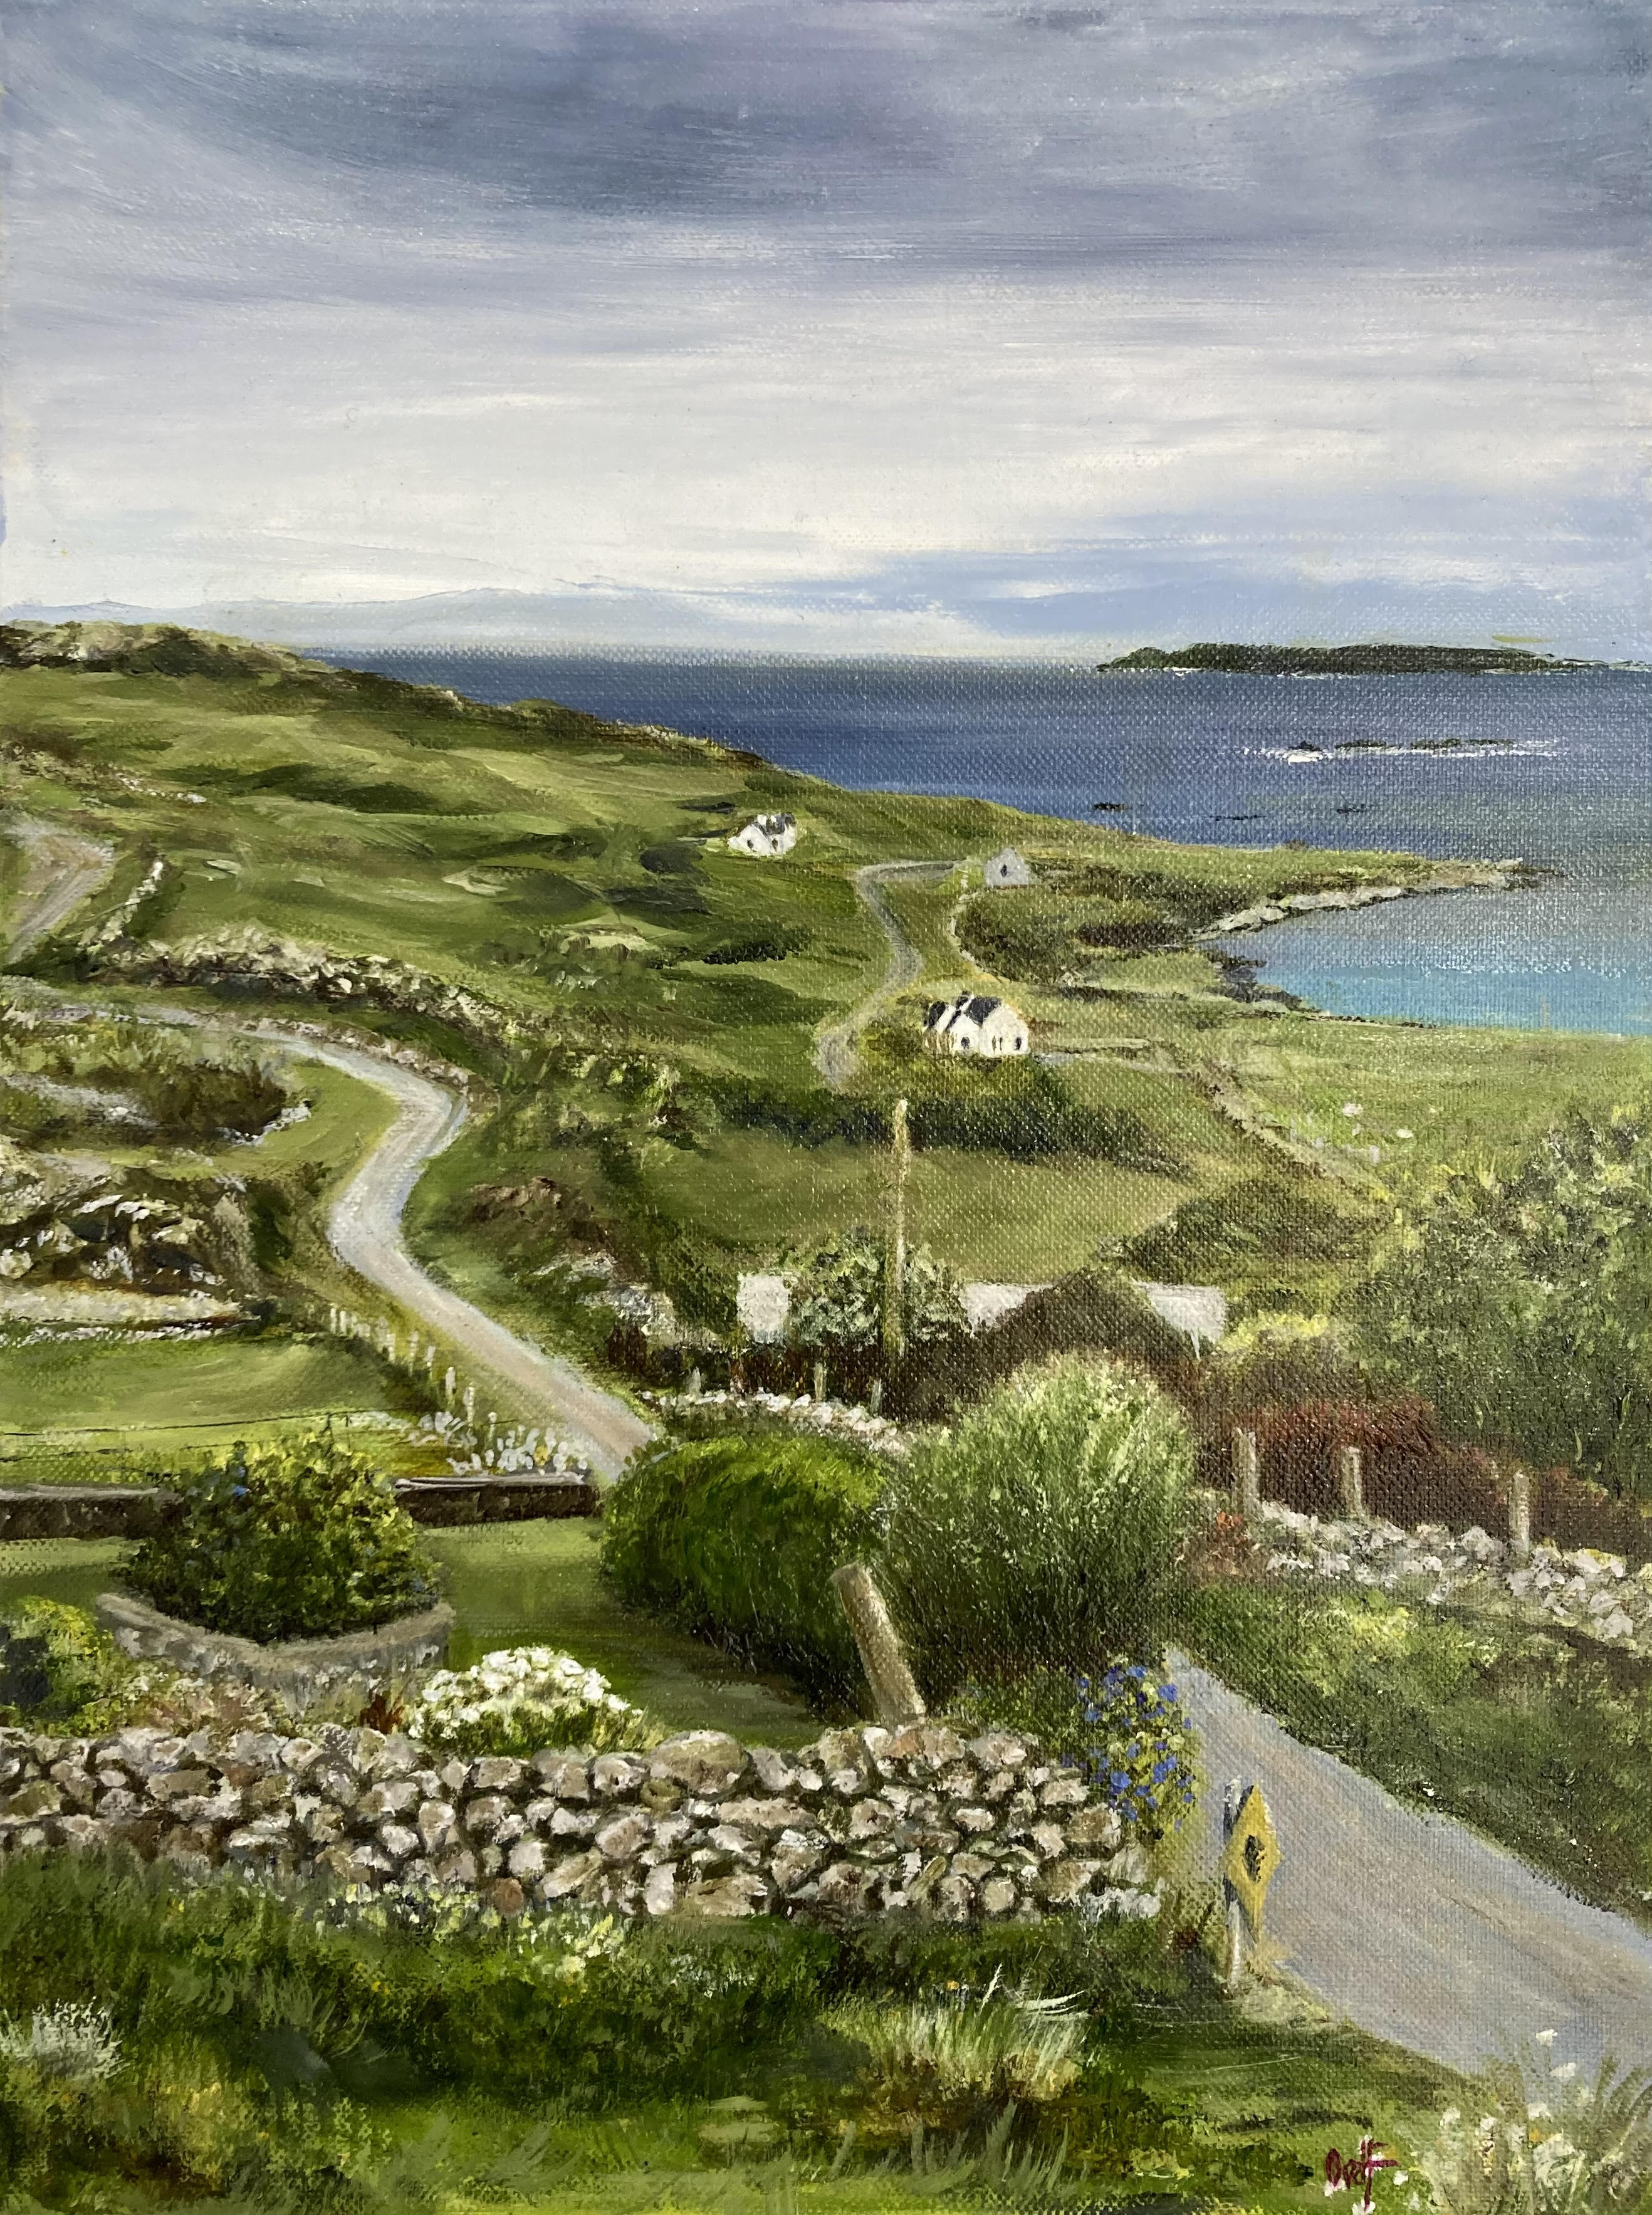 East End, Inishbofin by Olly van der Flier